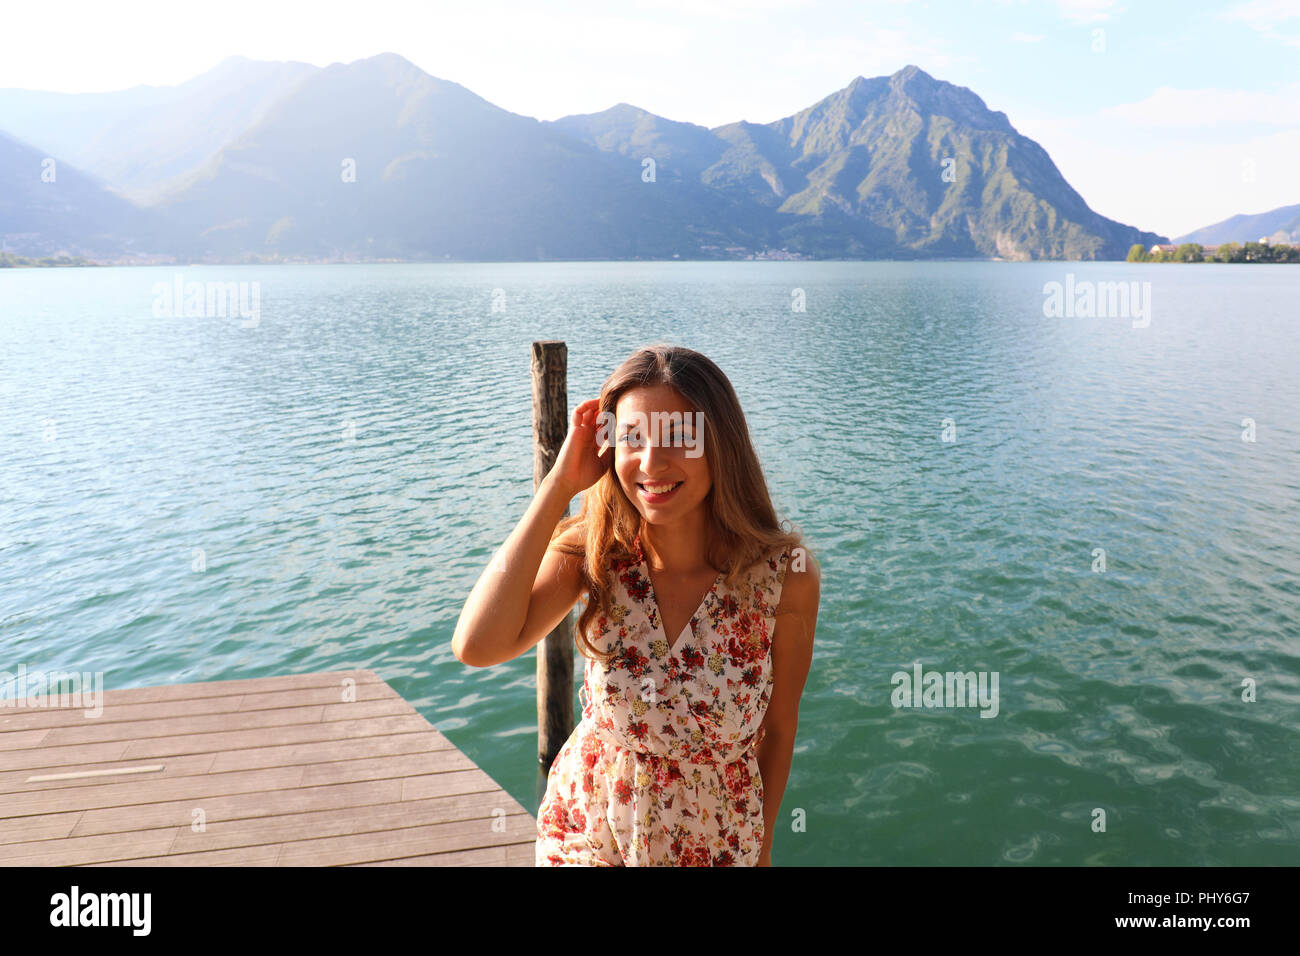 Portrait of happy beautiful woman on lake. Copy space. - Stock Image